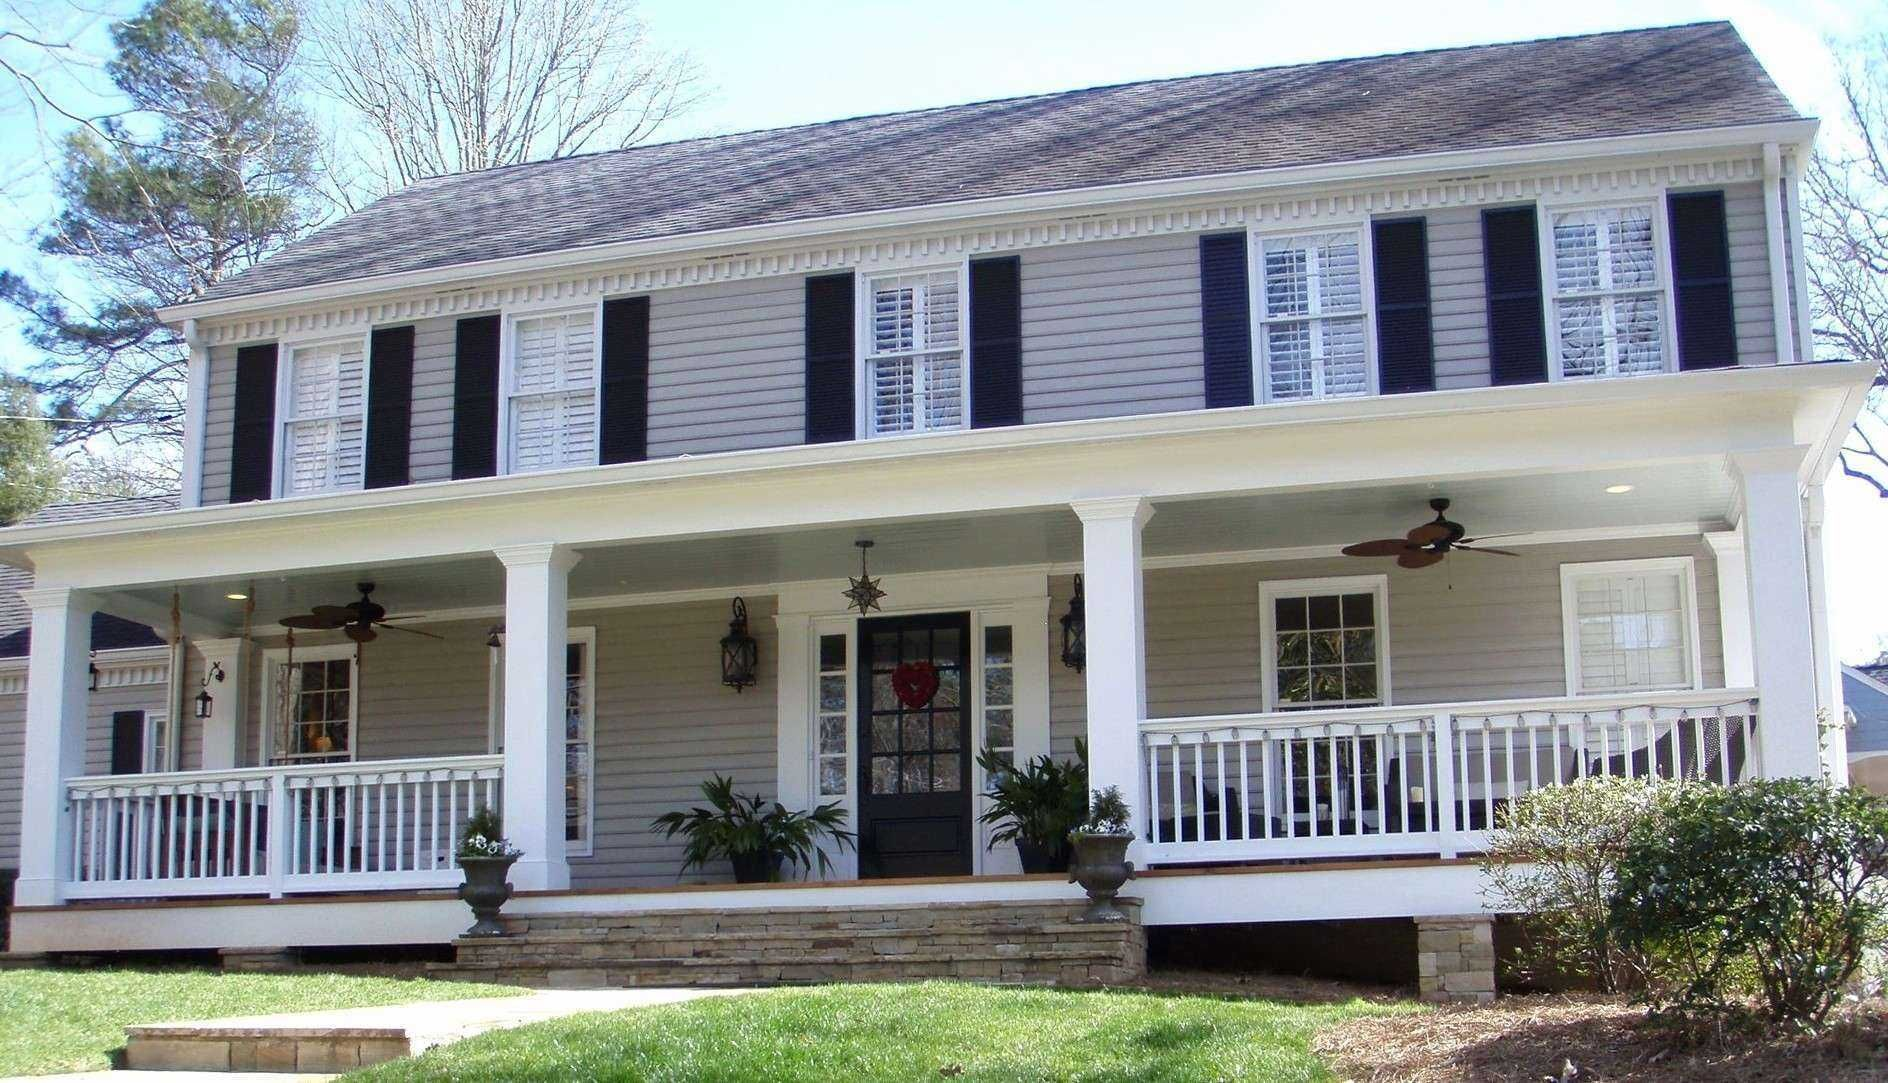 70 Awesome And Beautiful Front Porch Ideas Colonial Exterior Colonial House Exteriors Front Porch Design